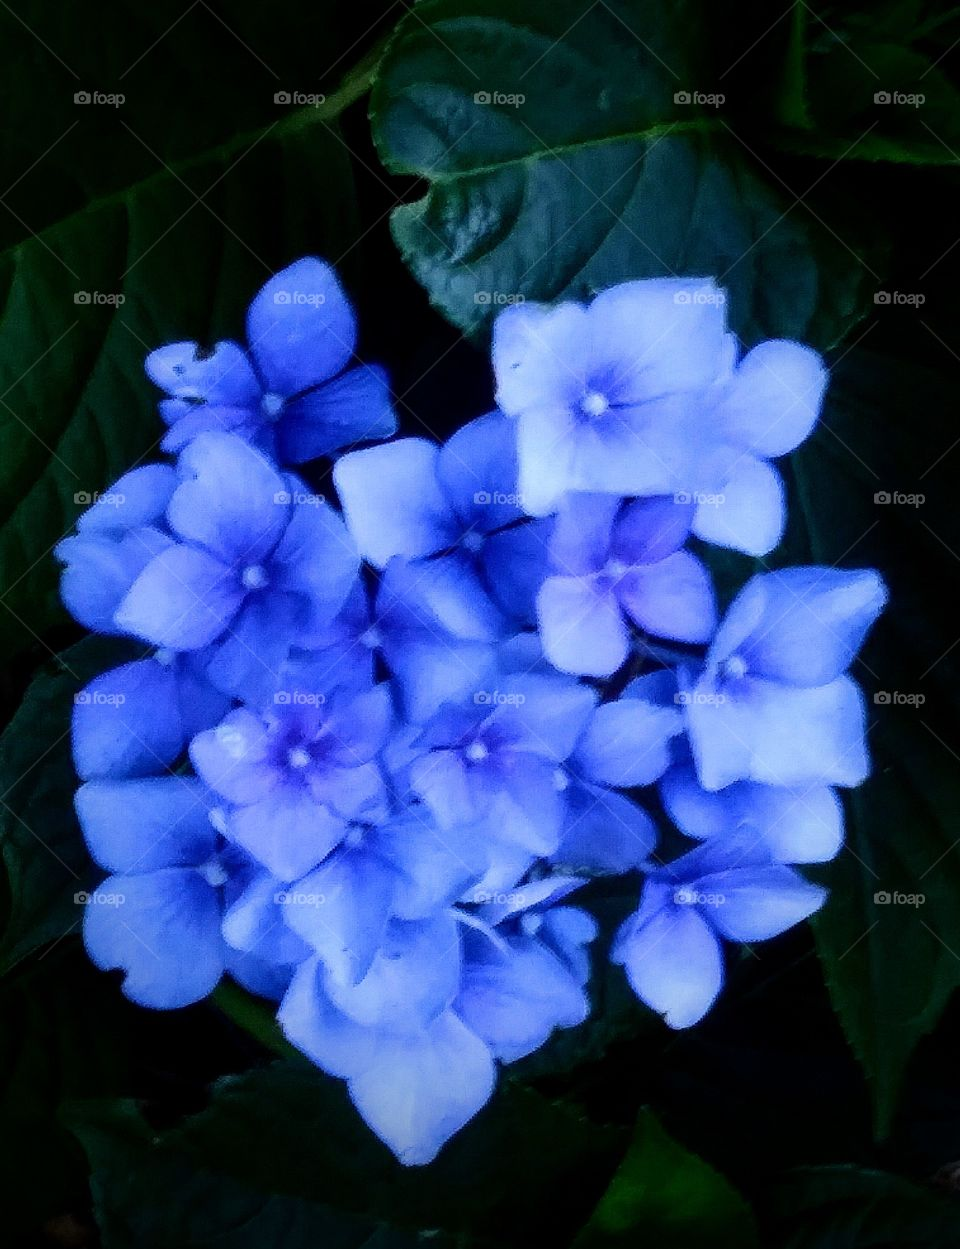 Hydrangea blossoms so blue they almost glow.